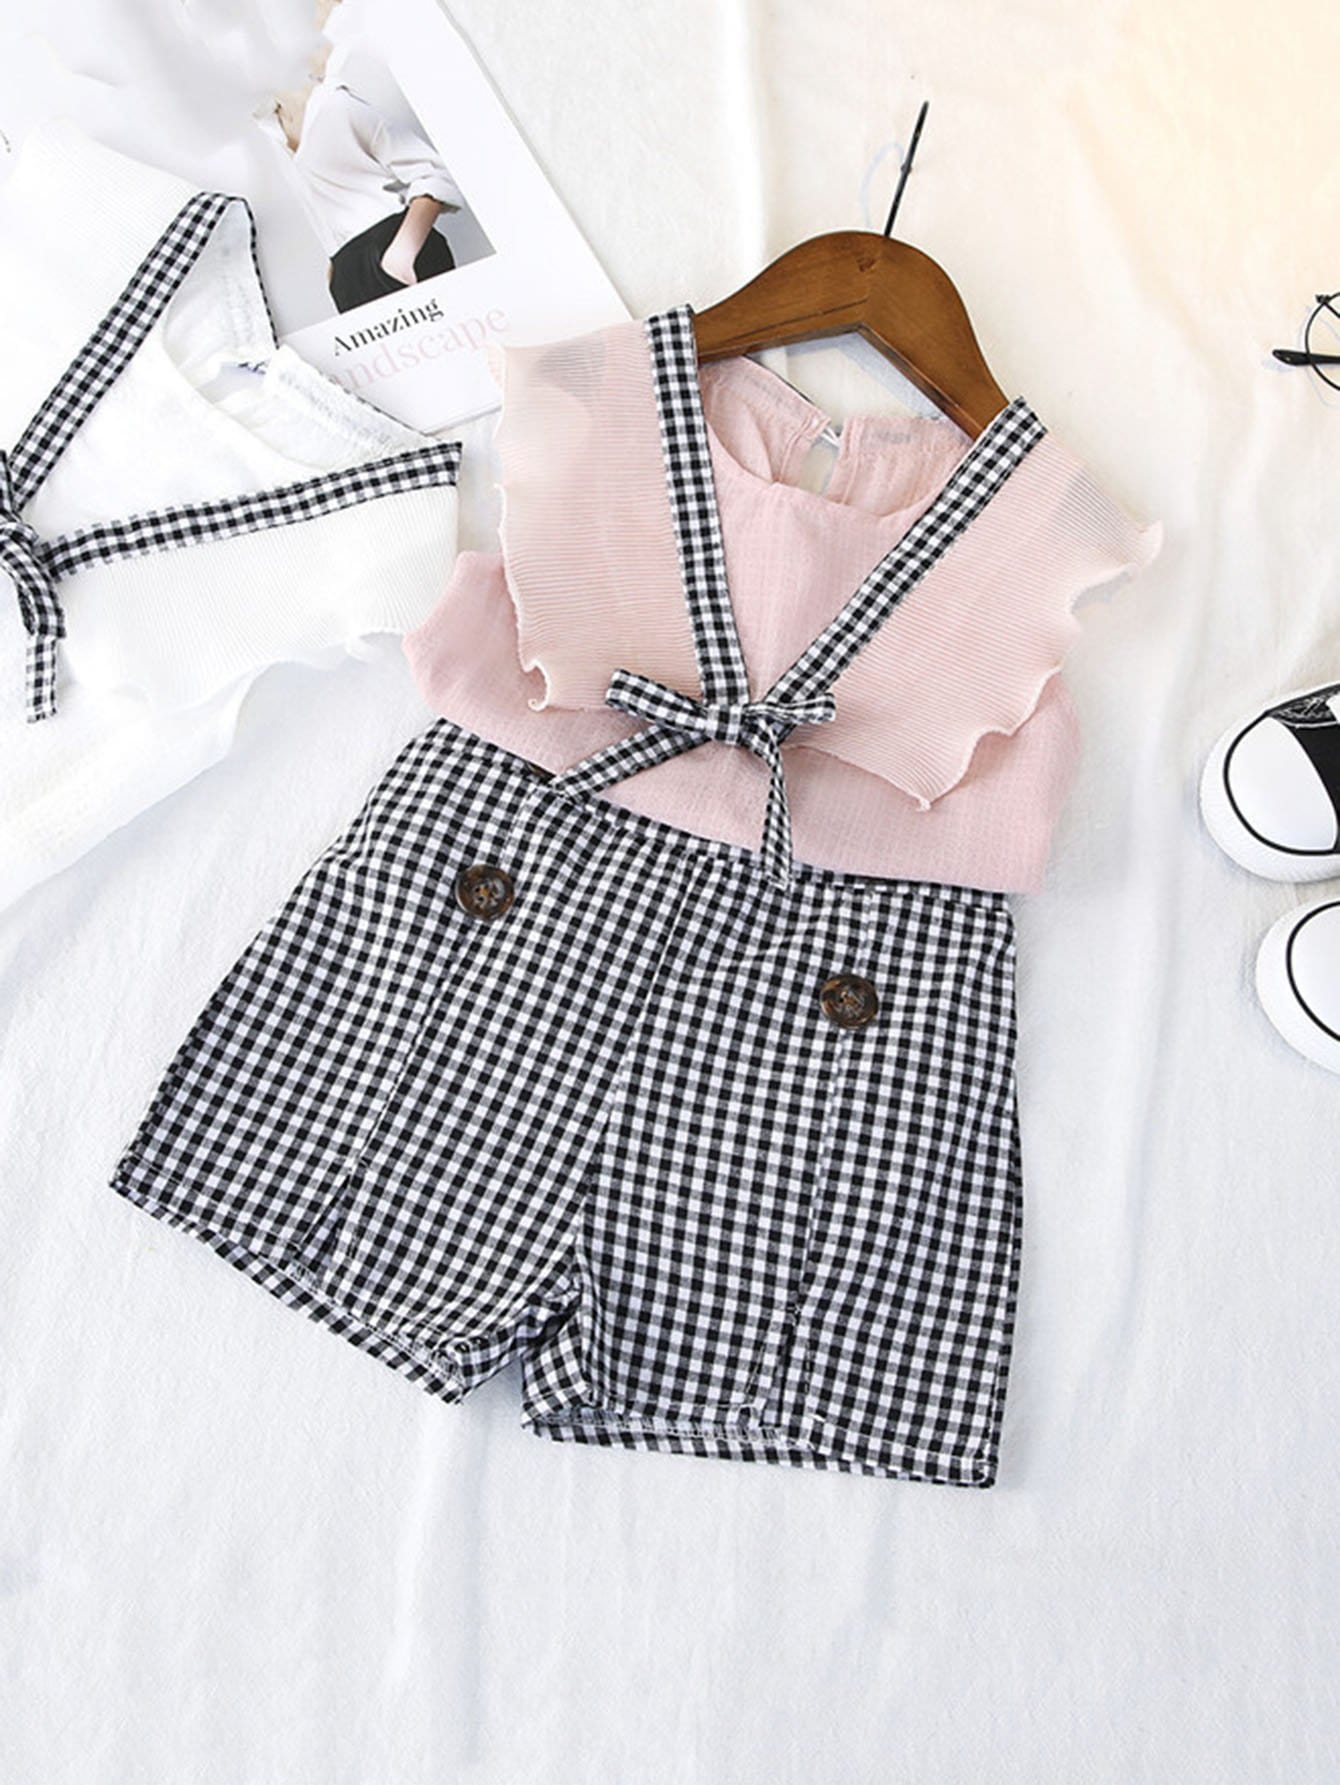 Kids Tie Detail Vest With Gingham Shorts obi tie outerwear with epaulet detail